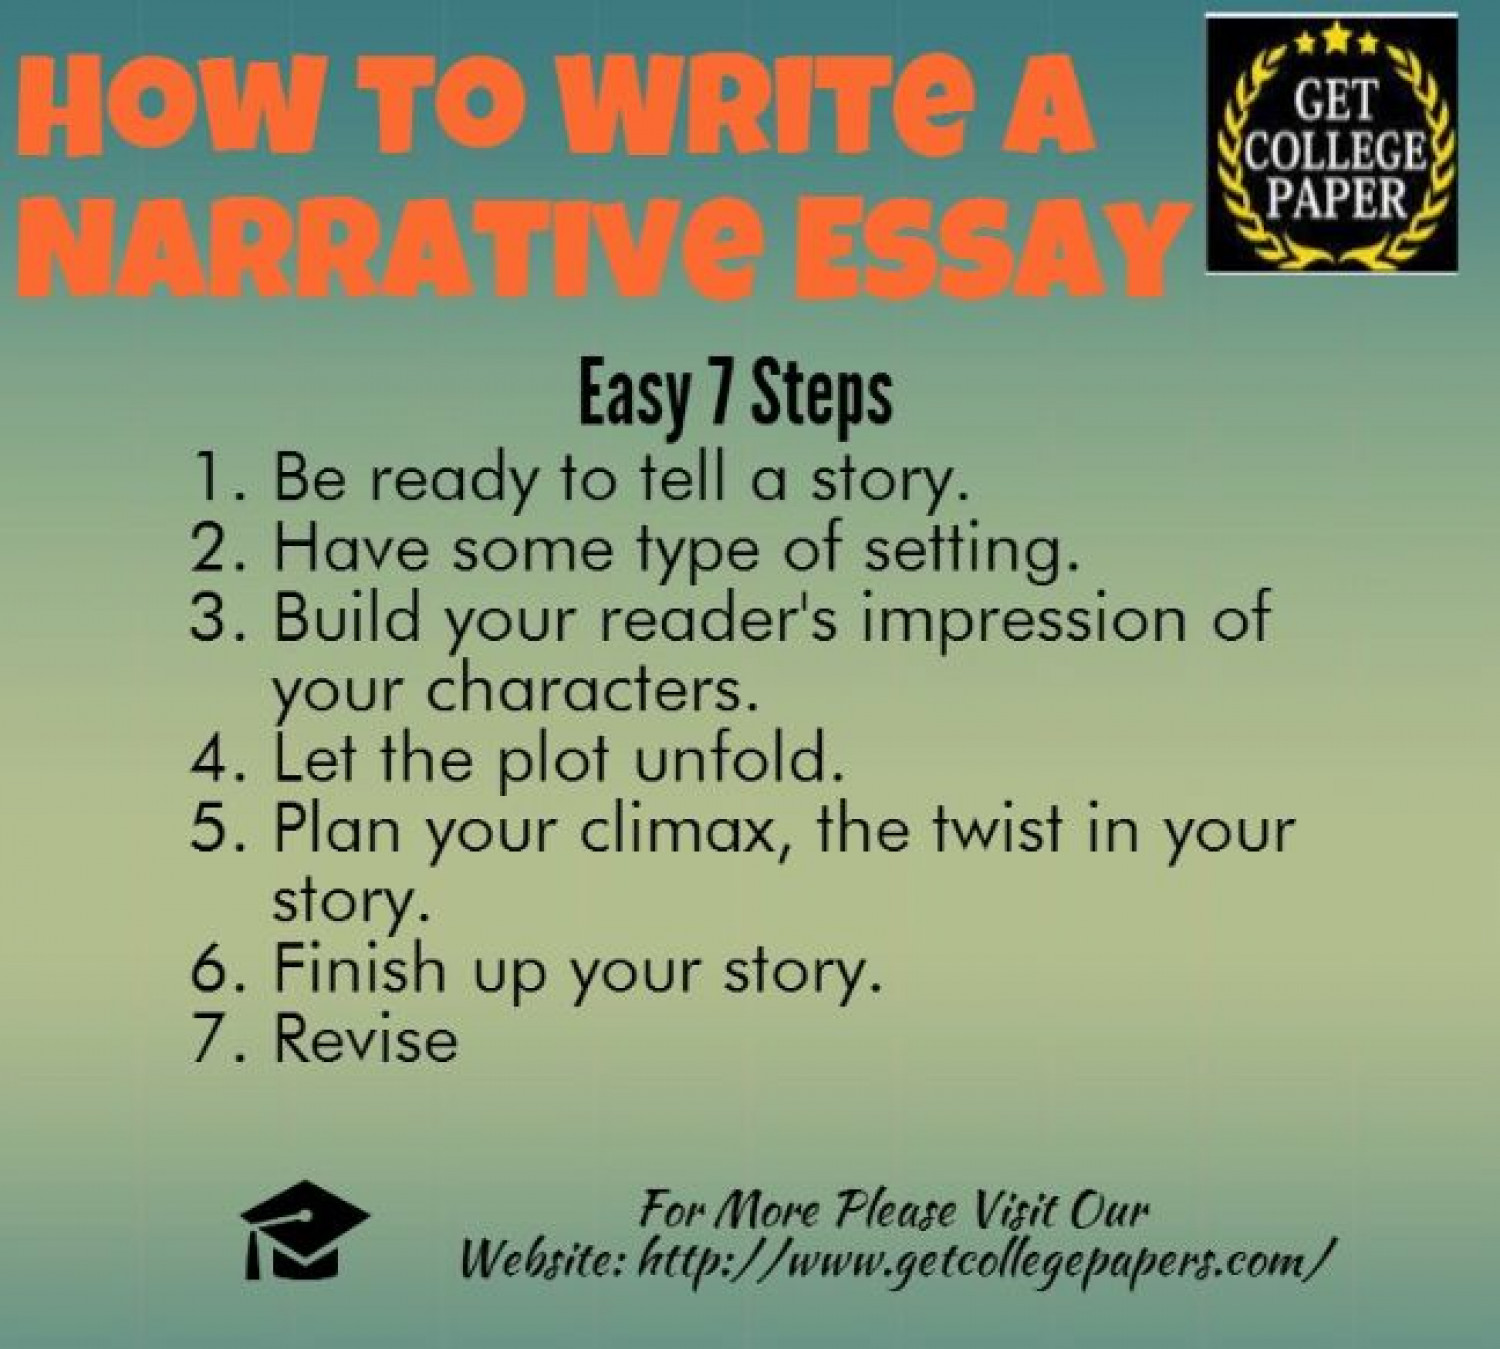 What To Write A Narrative Essay About How To Write A Narrative Essay ce W What To Write A Narrative Essay About